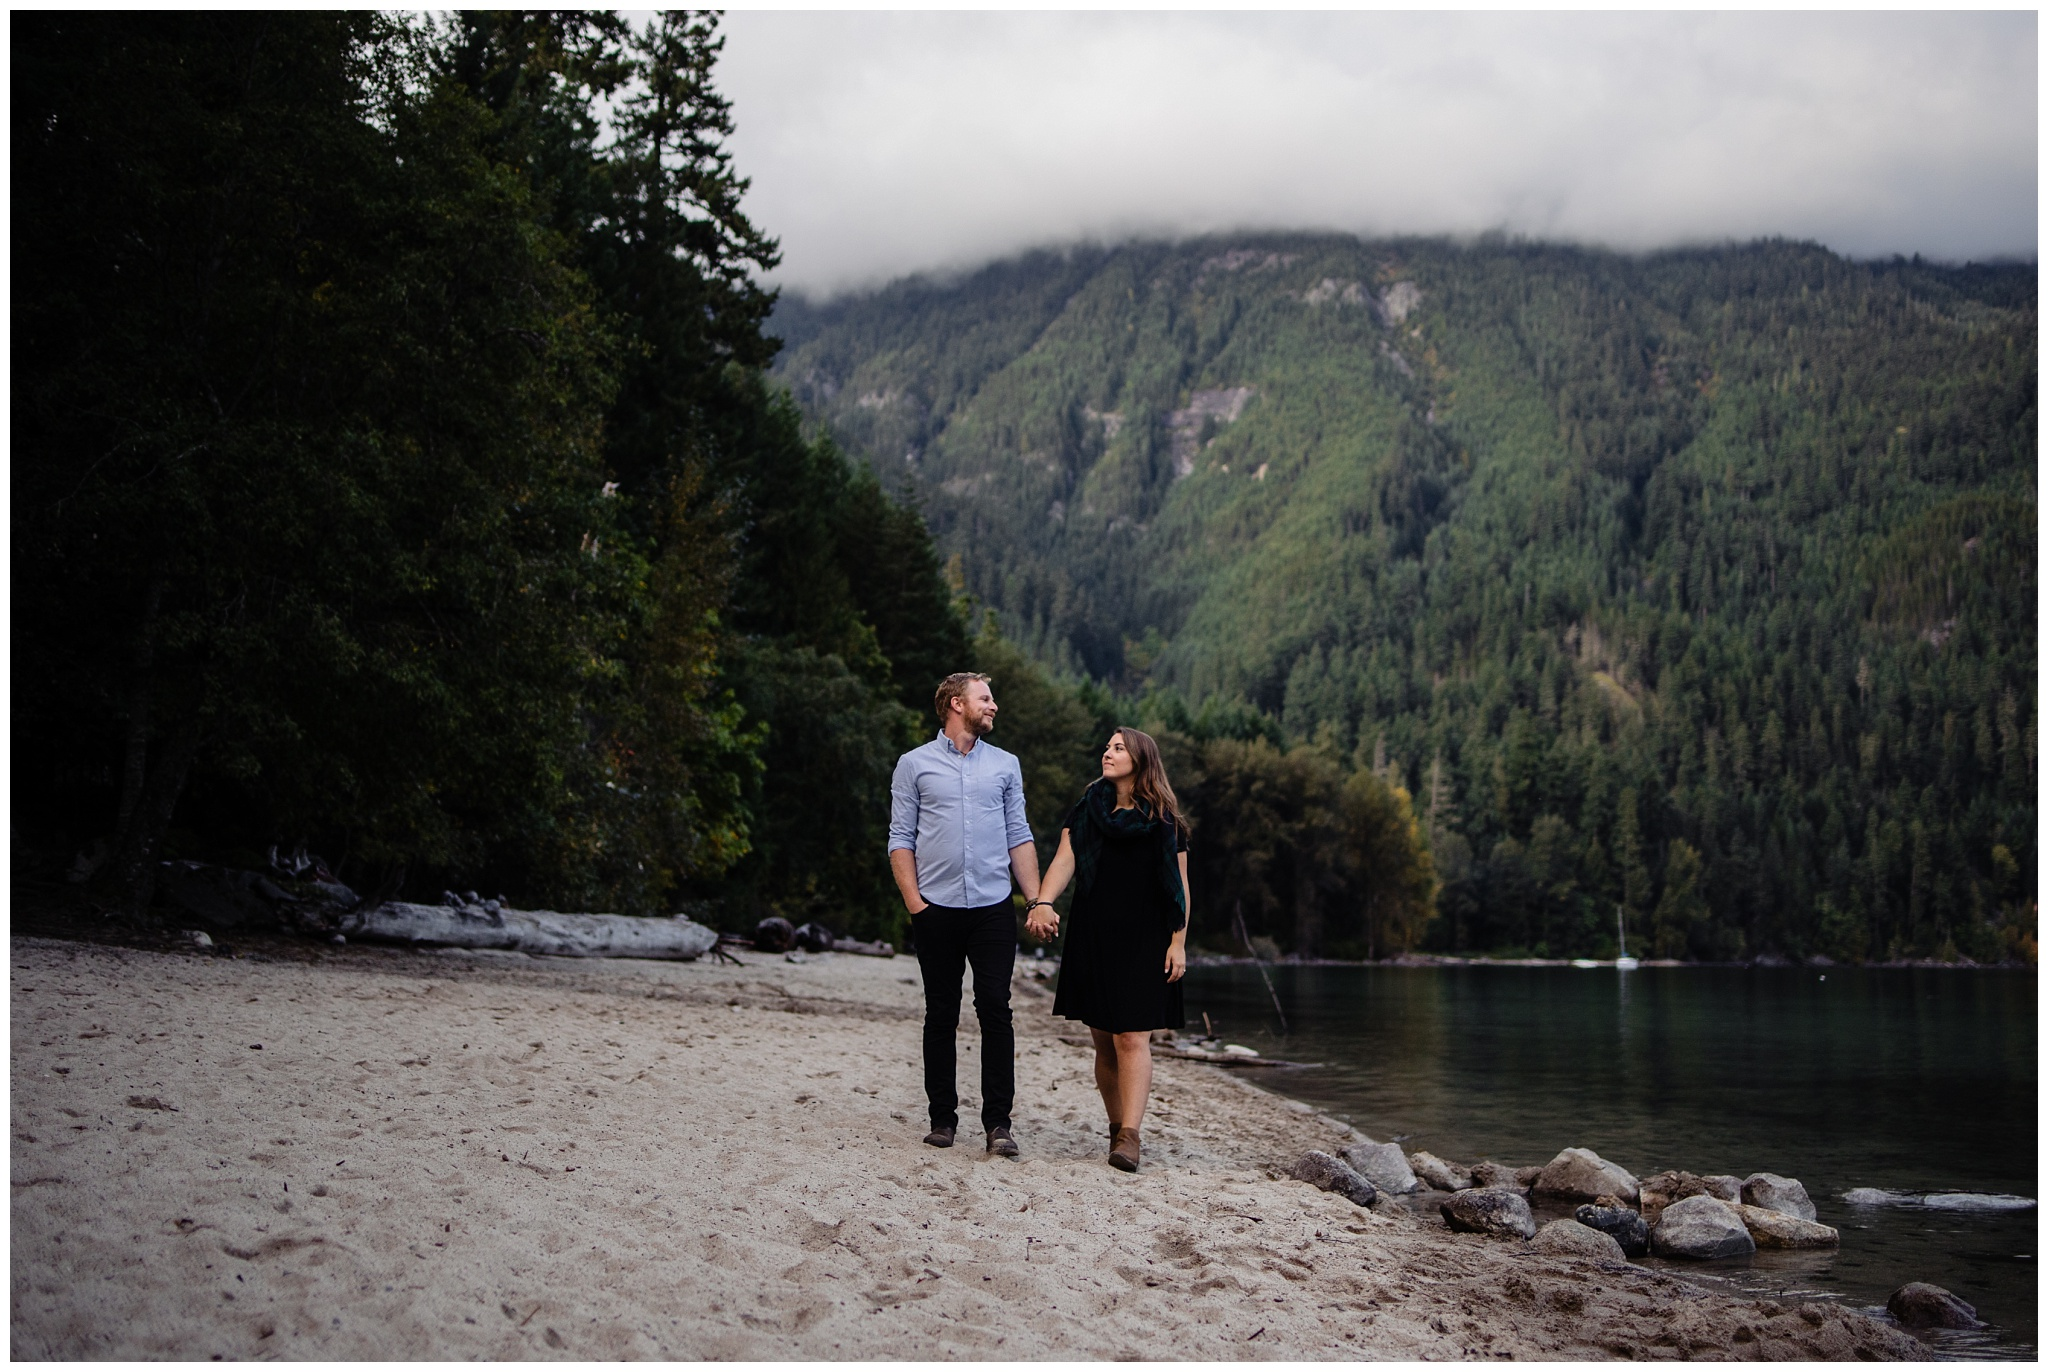 Chilliwack Lake Fall Engagement Photo Inspiration Poses Chilliwack Engagement Photographer_0020.jpg